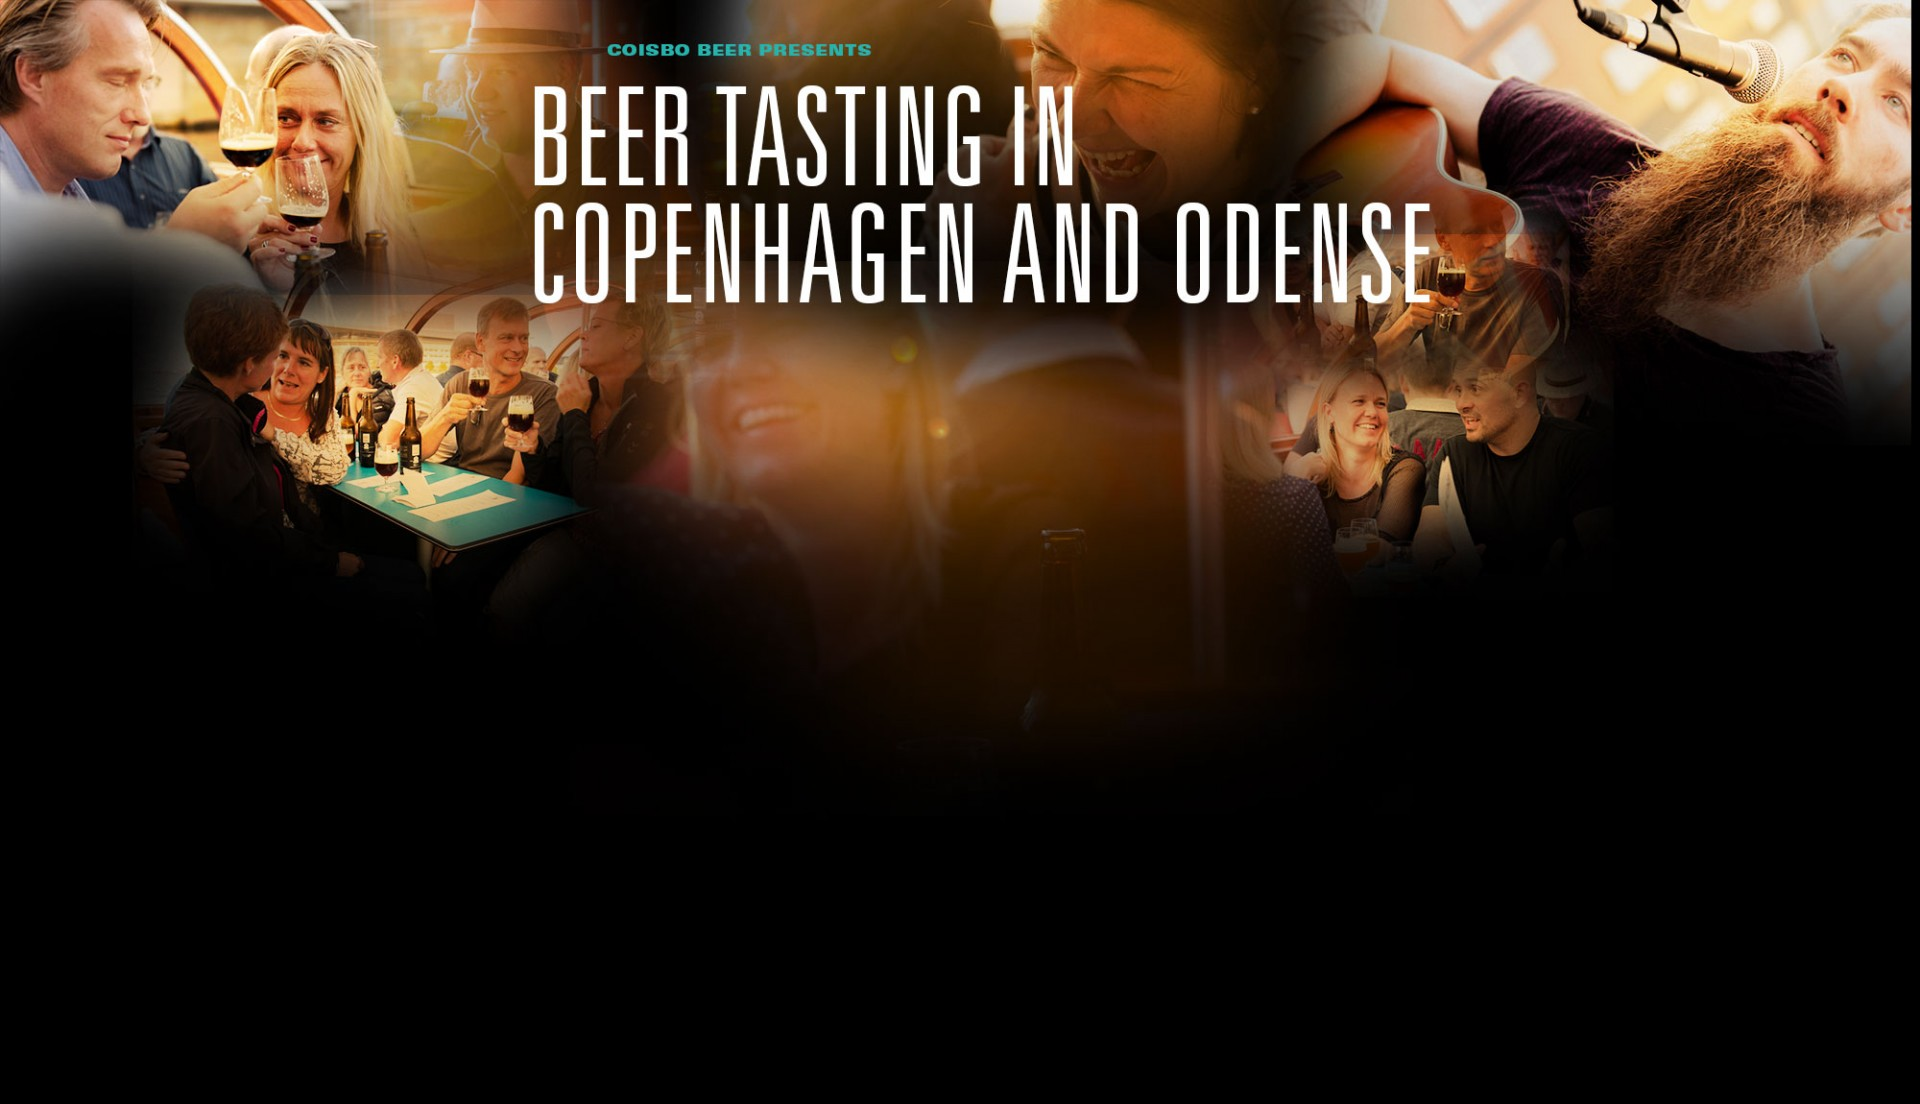 Beer tasting in Copenhagen and Odense